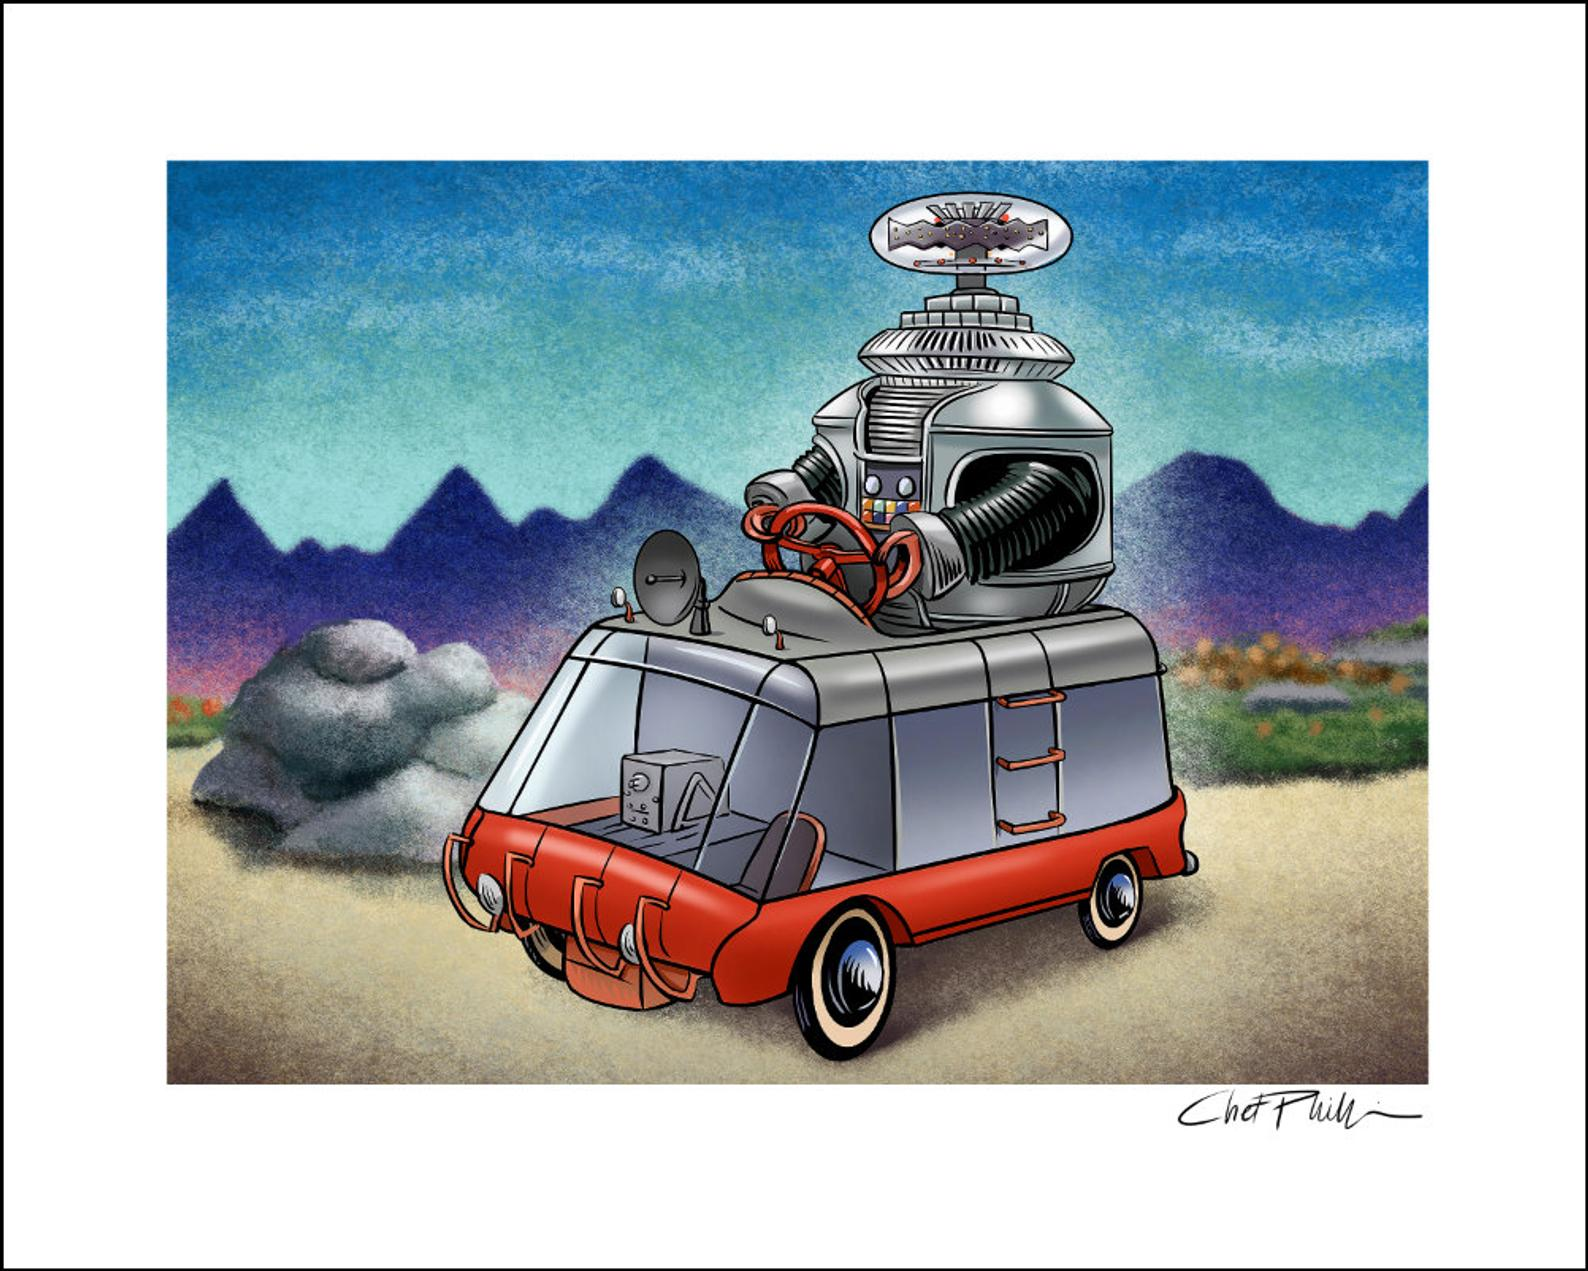 Lost in Space Pedal Car 8 x 10 print